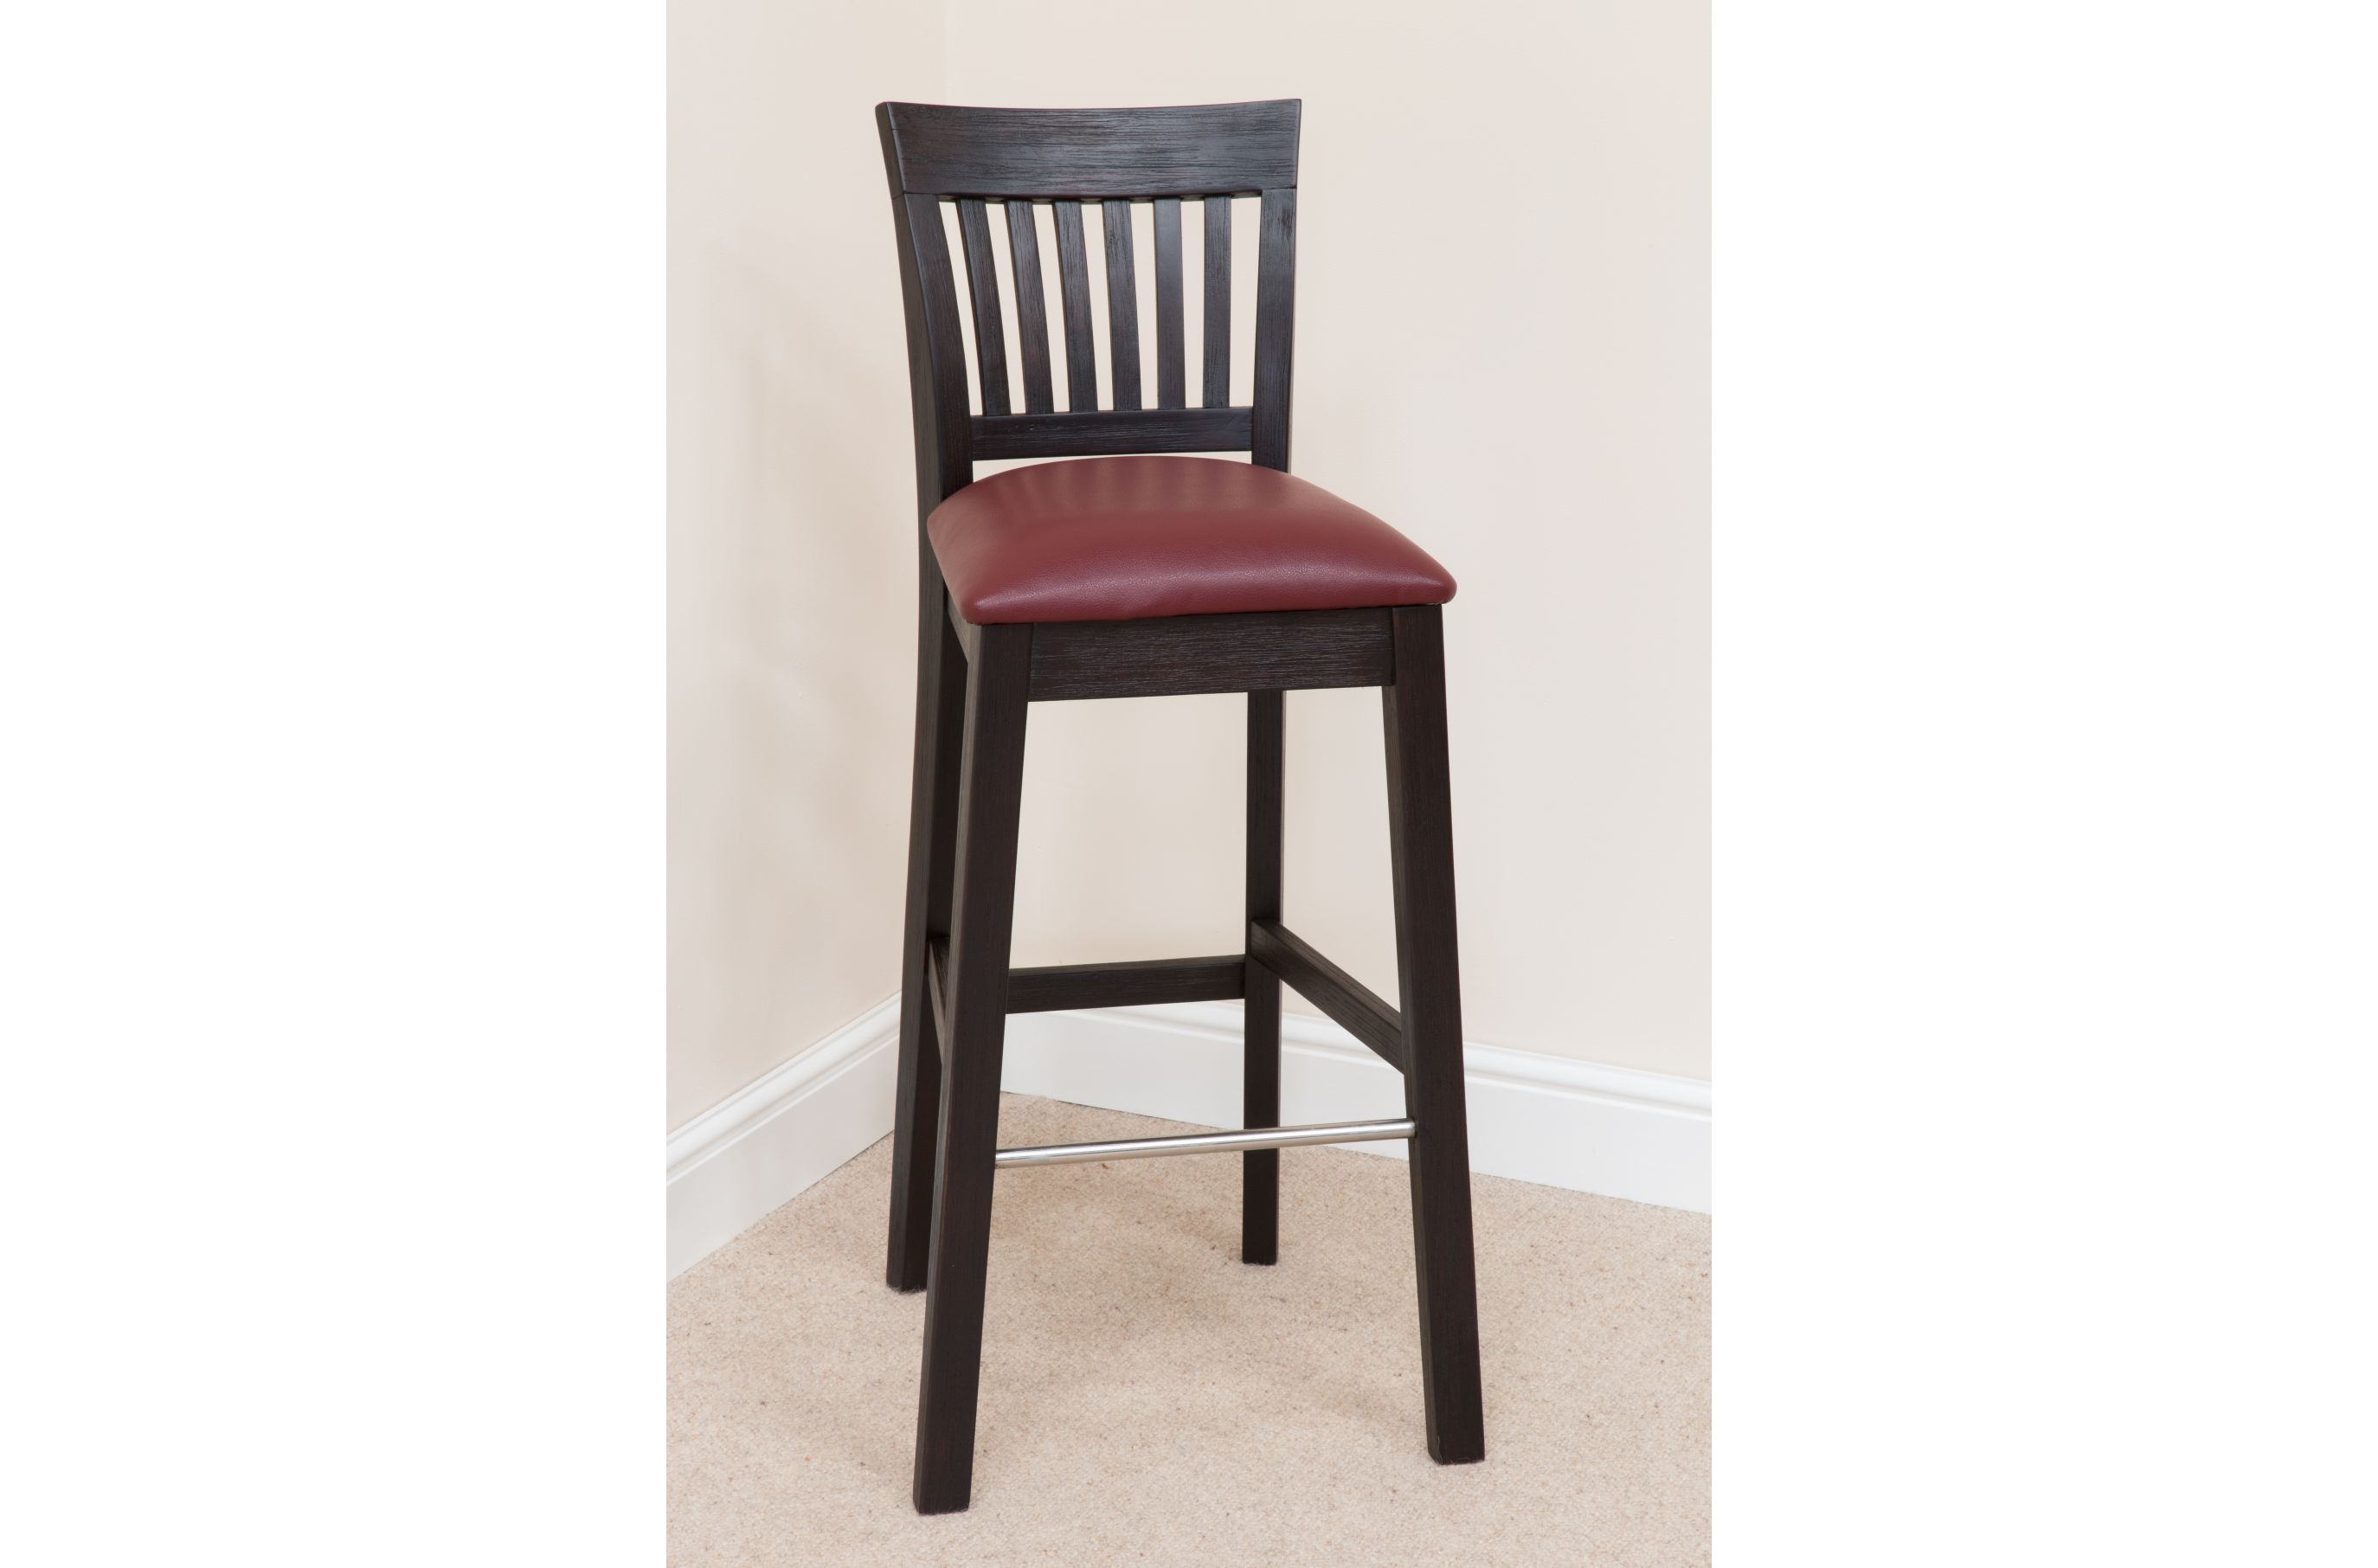 Furniture Extra Tall Bar Stool With Red Faux Leather Padded Seat